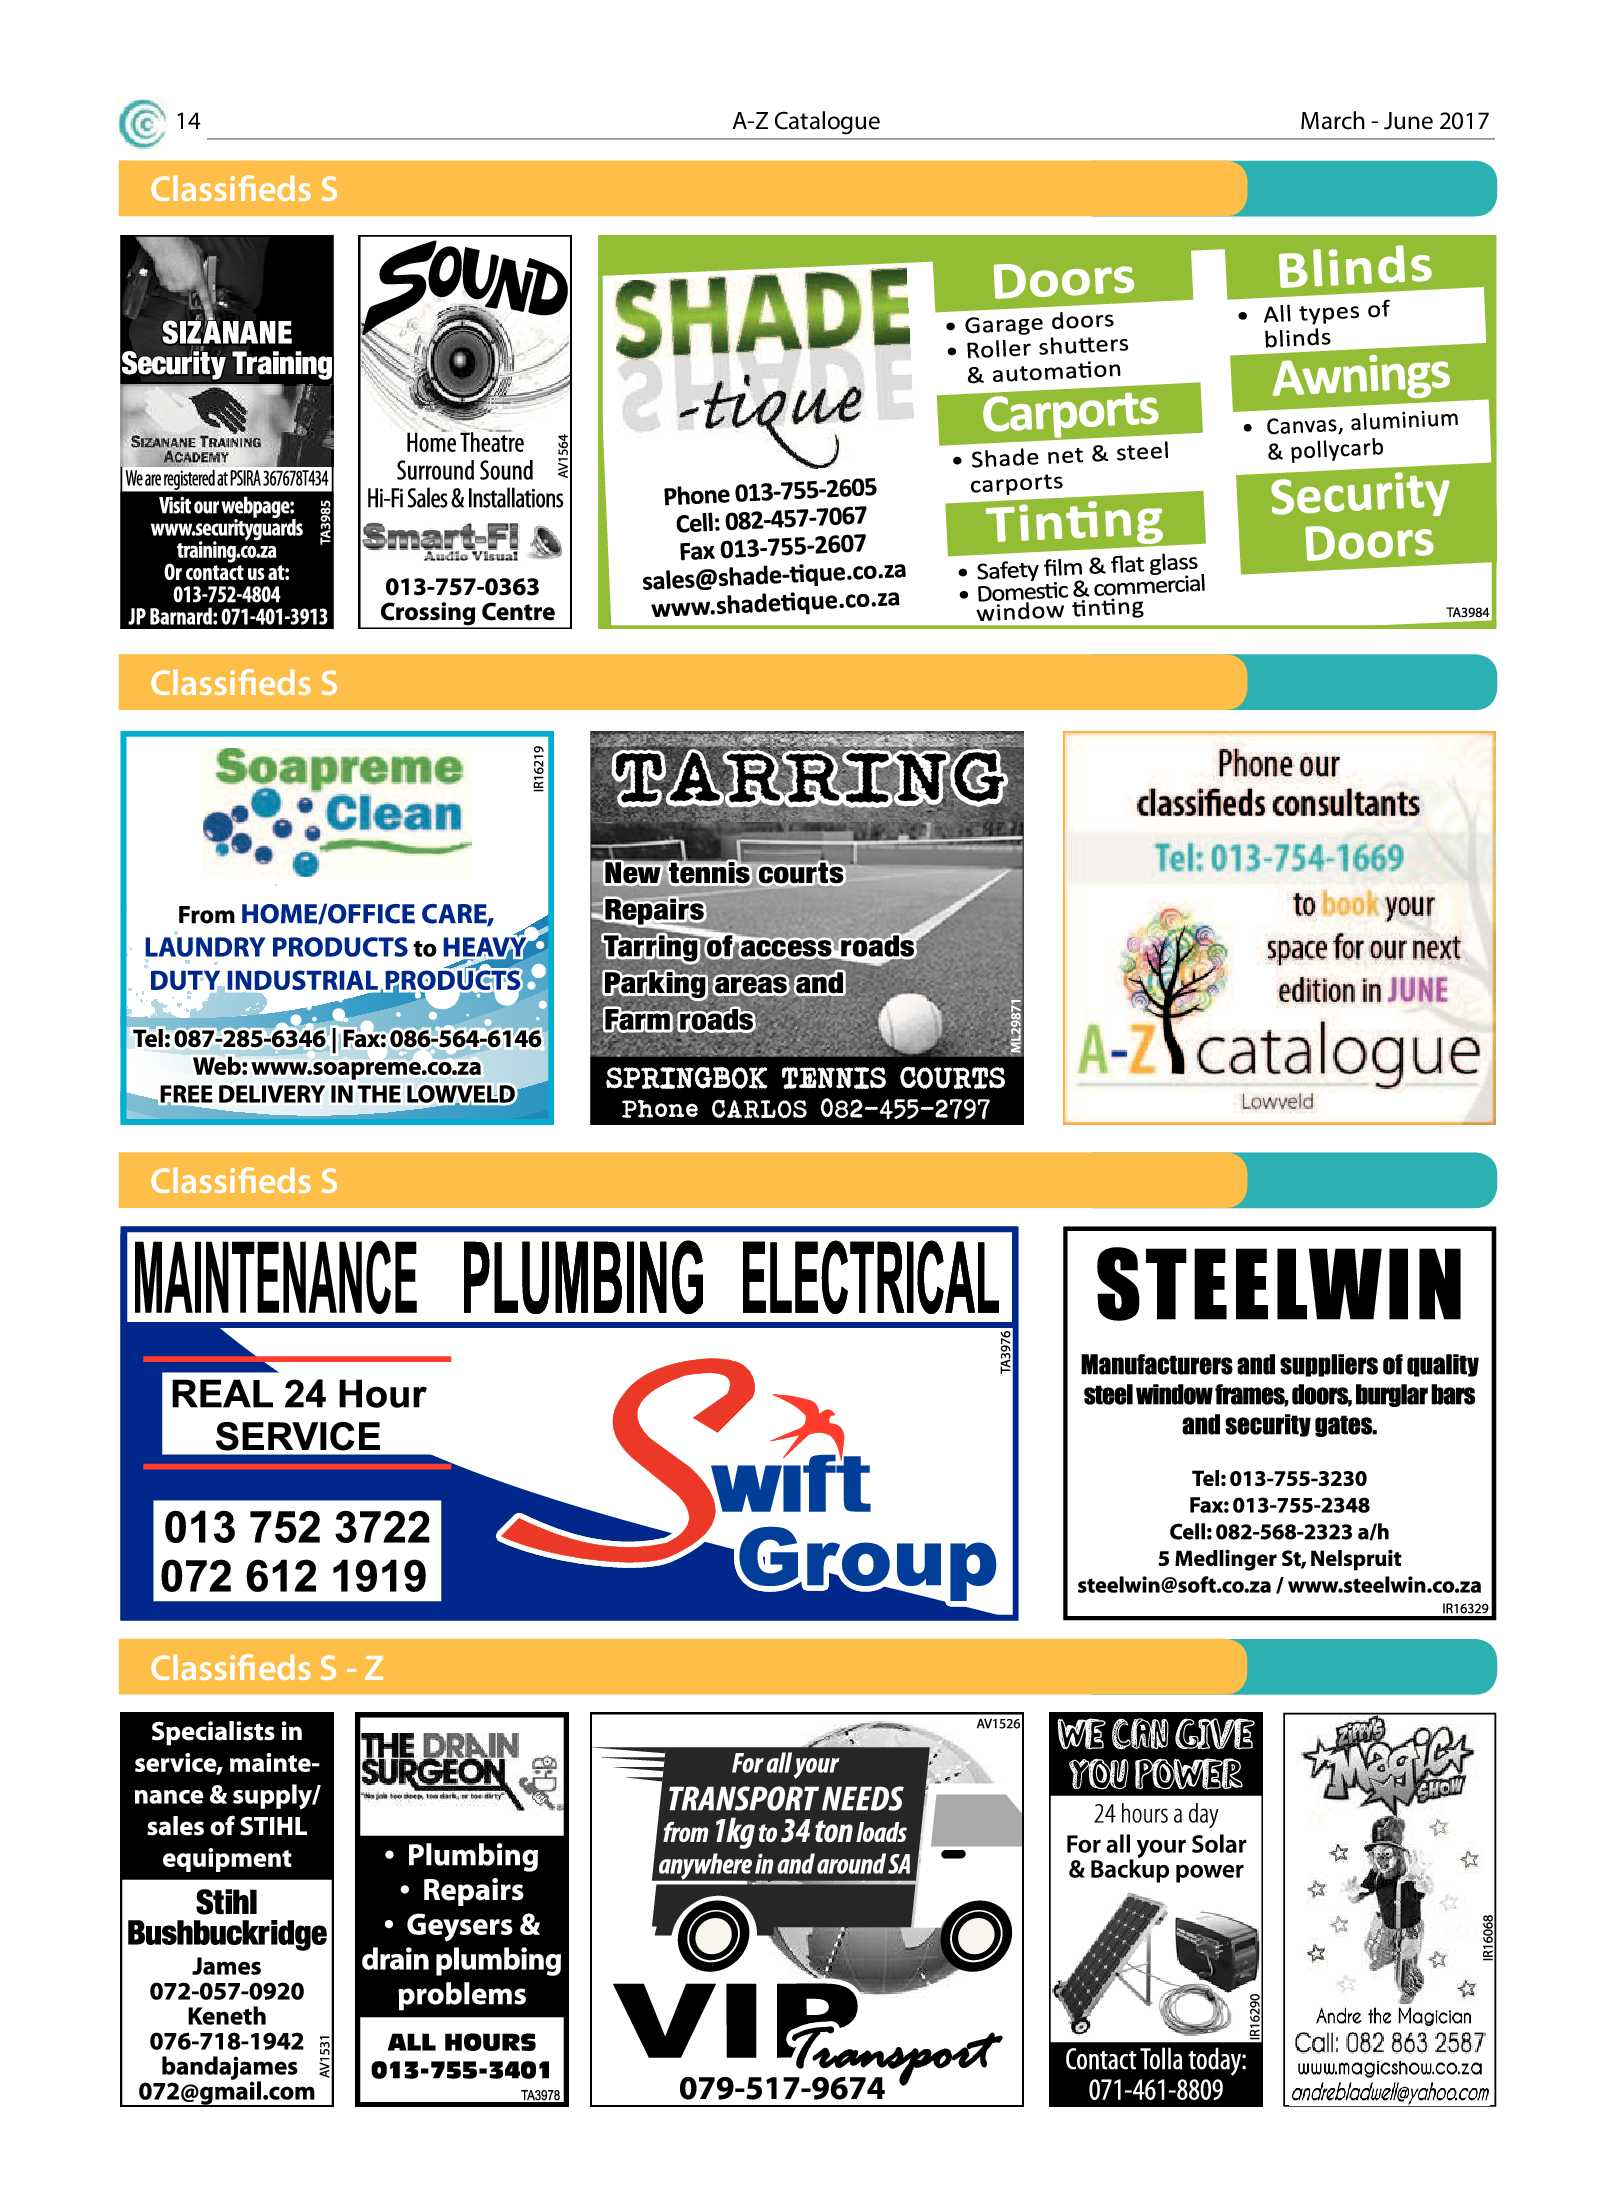 z-catalogue-march-june-2017-epapers-page-14